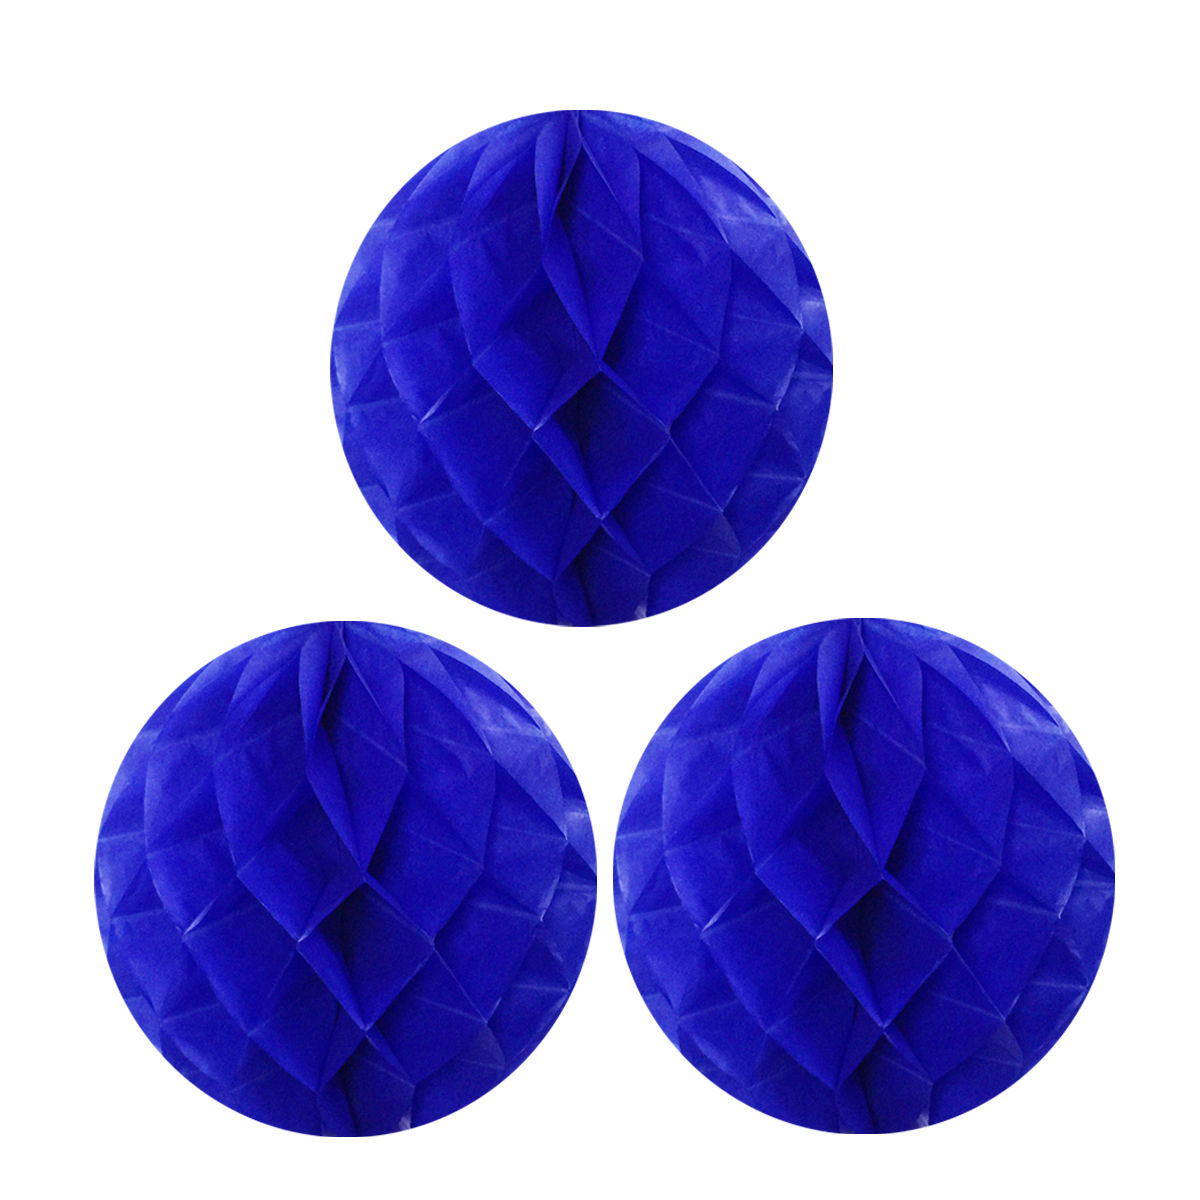 """Wrapables® 10"""" Set of 3 Tissue Honeycomb Ball Party Decorations for Weddings, Birthday Parties, Baby Showers, and Nursery Décor, Red"""